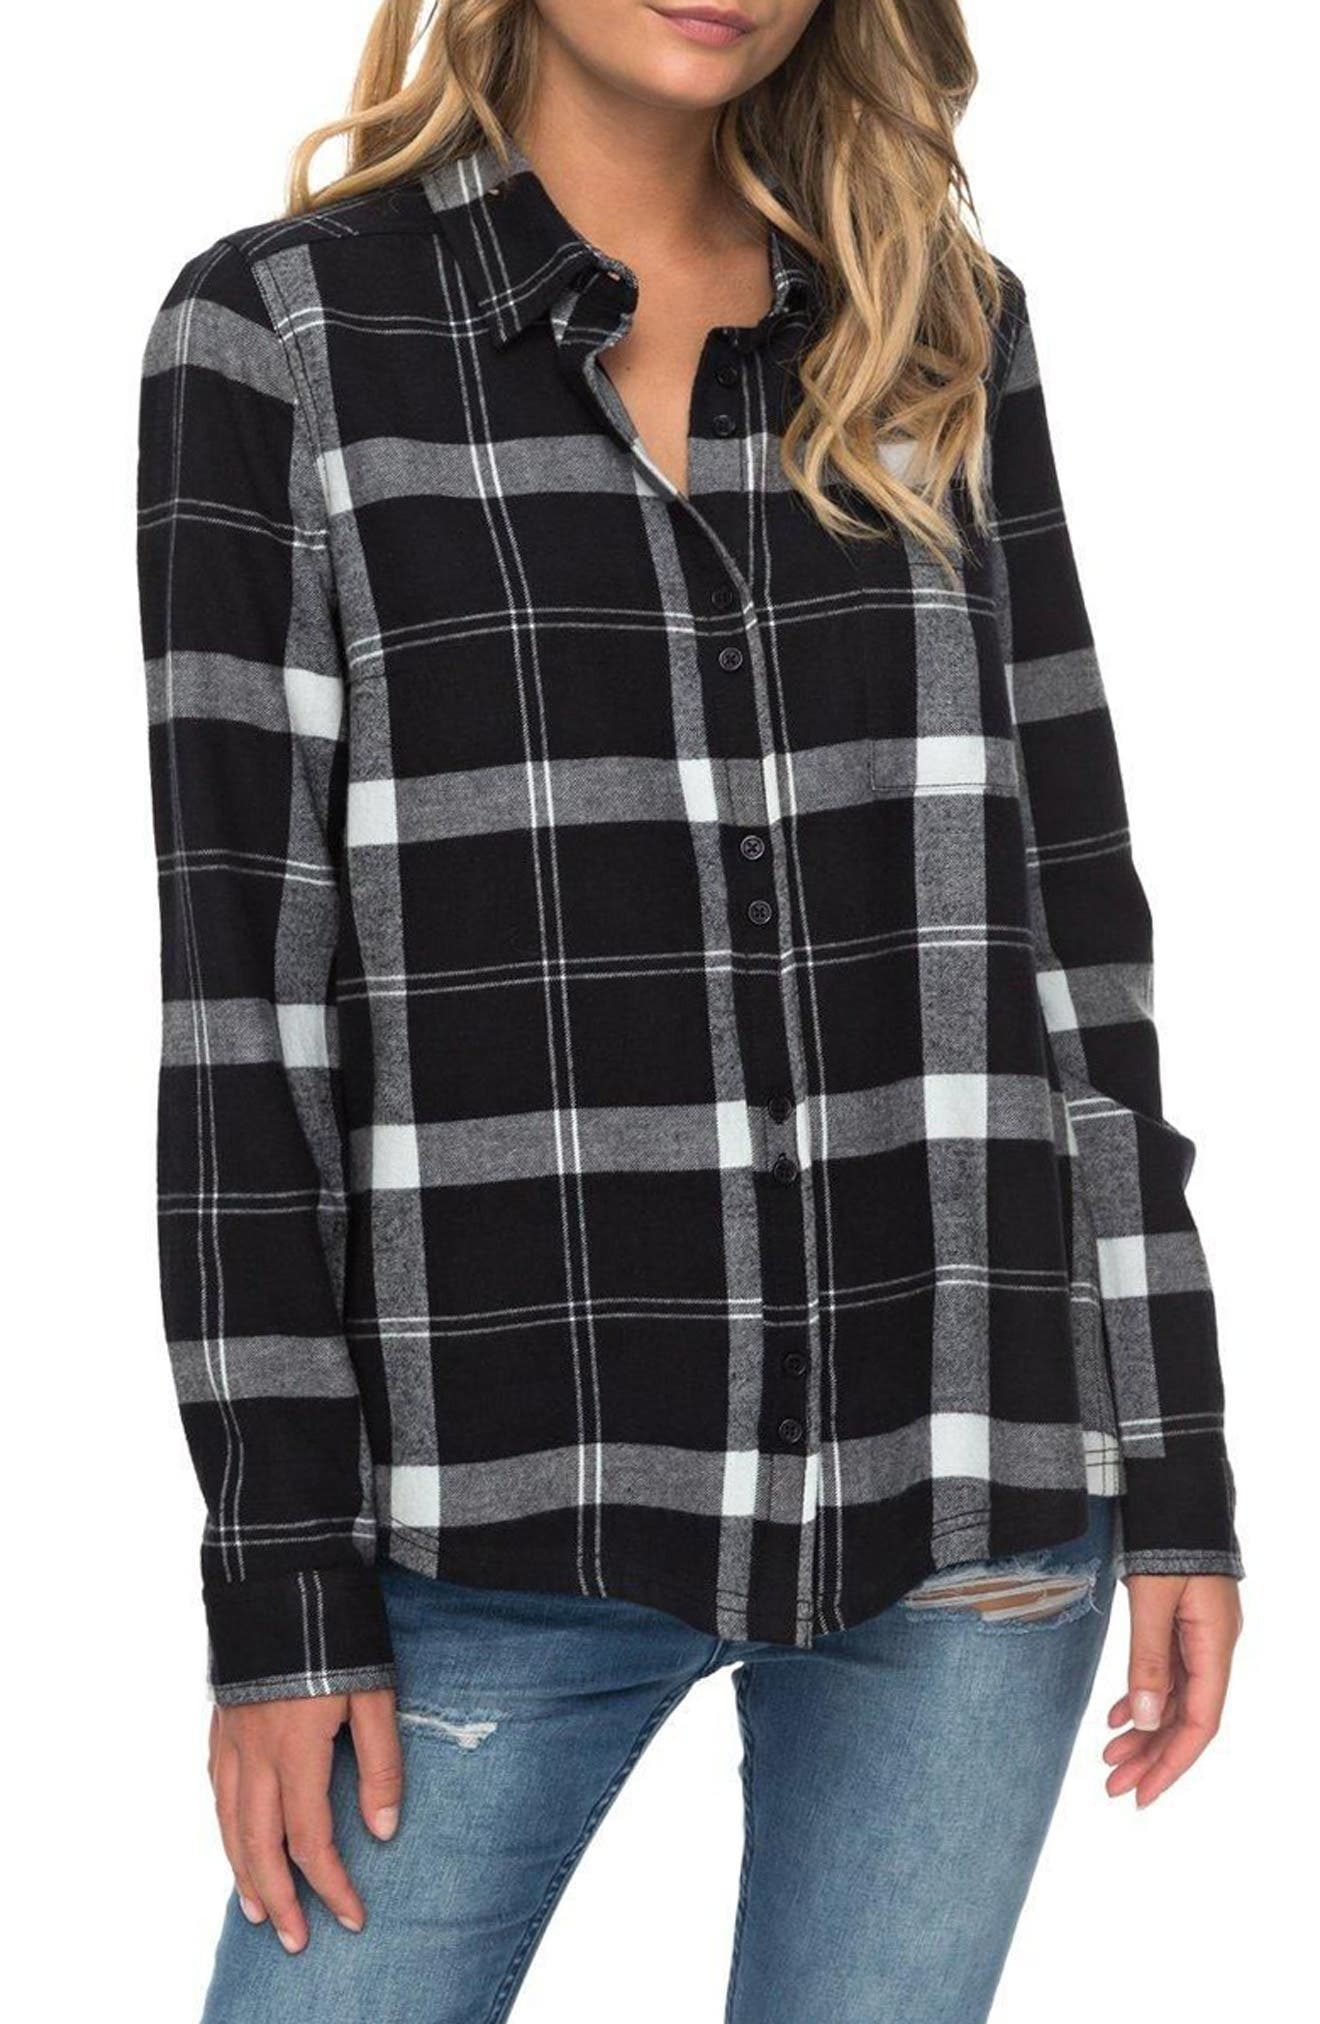 Heavy Feelings Plaid Cotton Shirt,                         Main,                         color, Checked Plaid Combo Anthracite